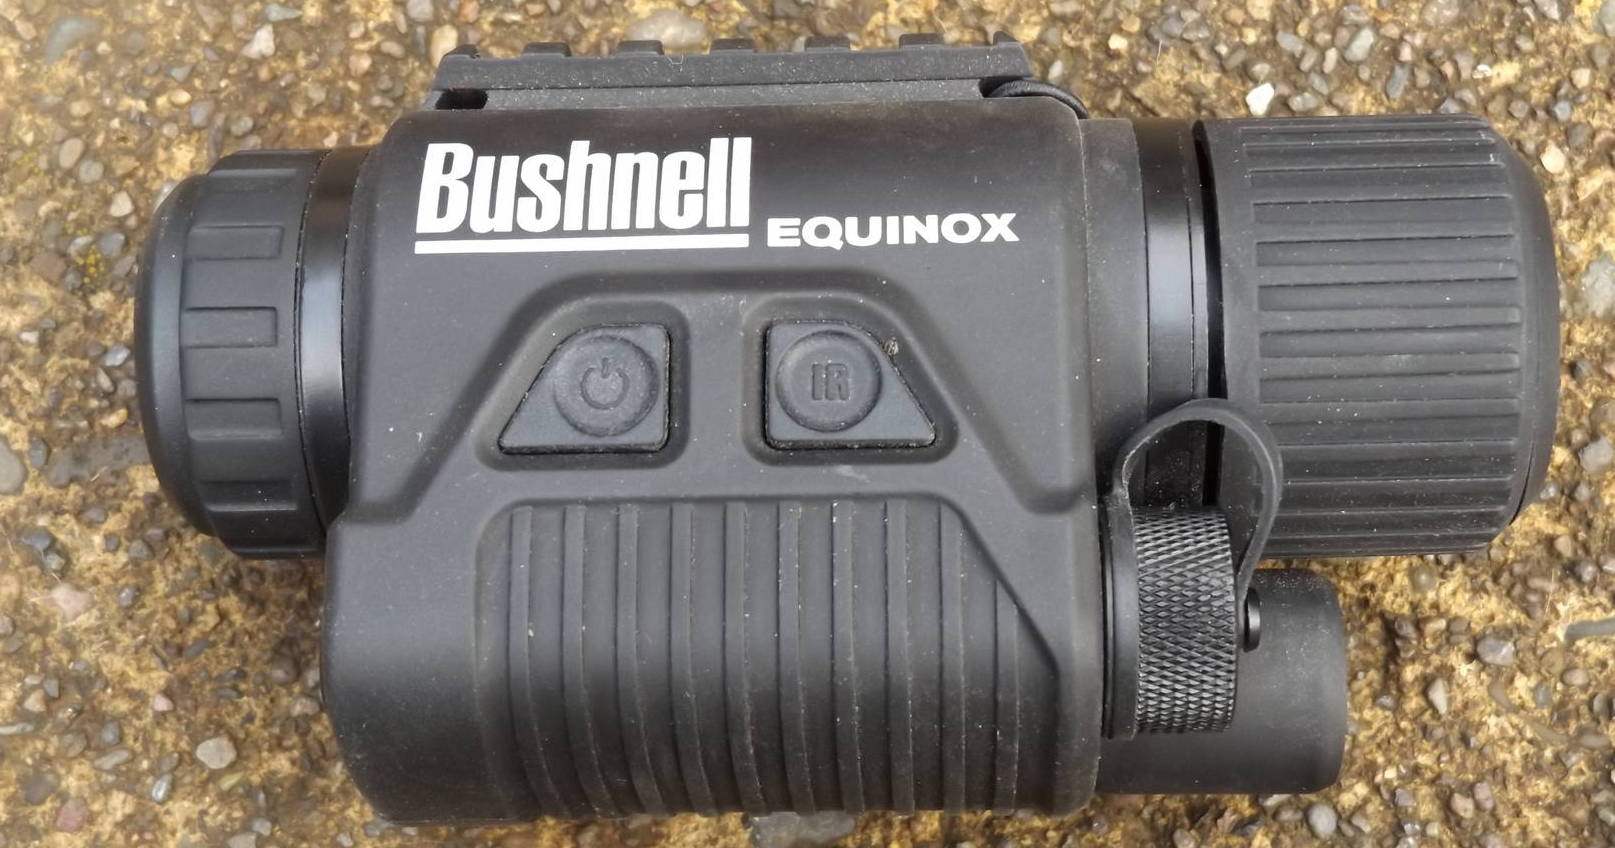 Bushnell Equinox Night Vision Scope, by Pat Cascio